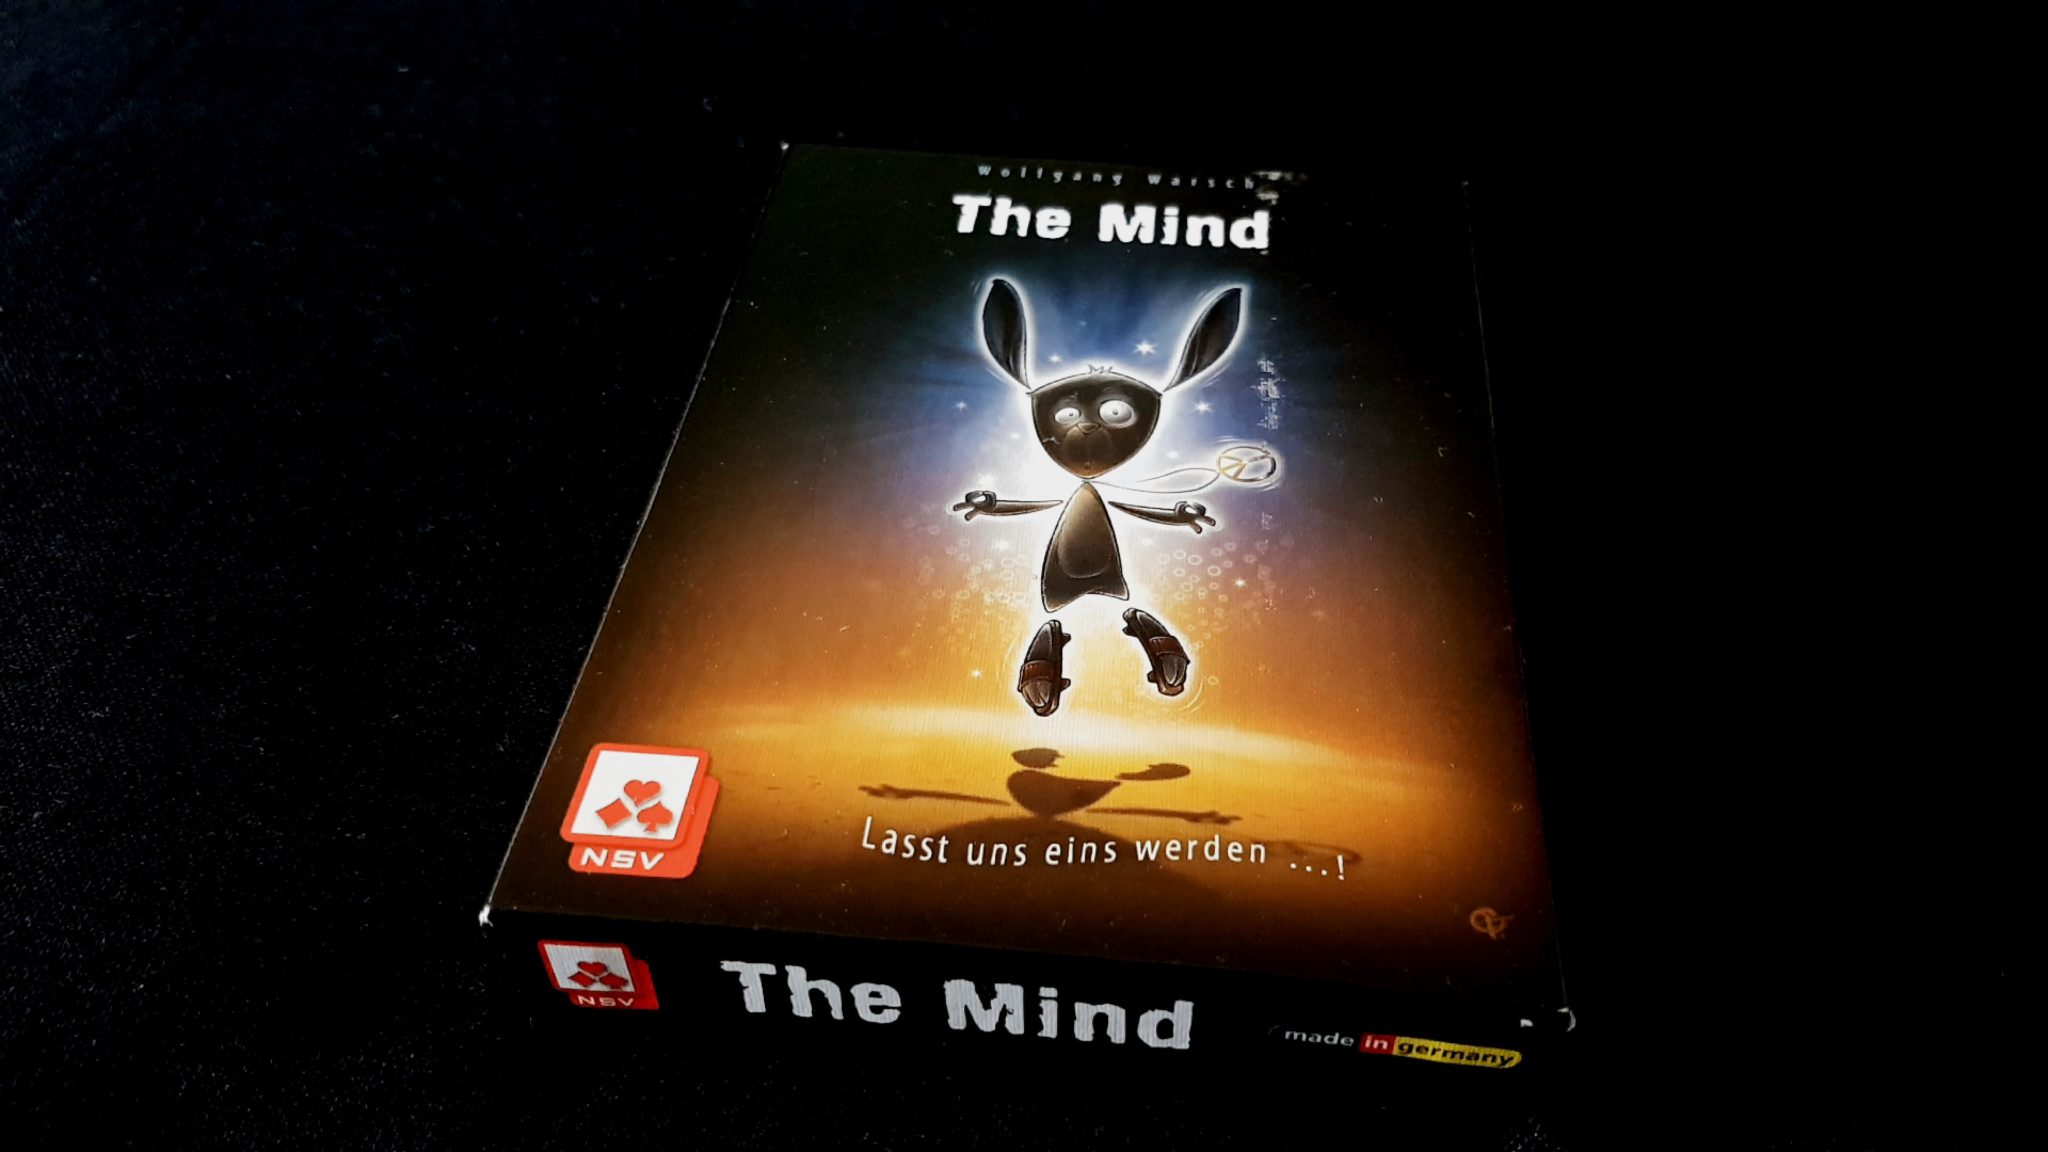 The box for The Mind